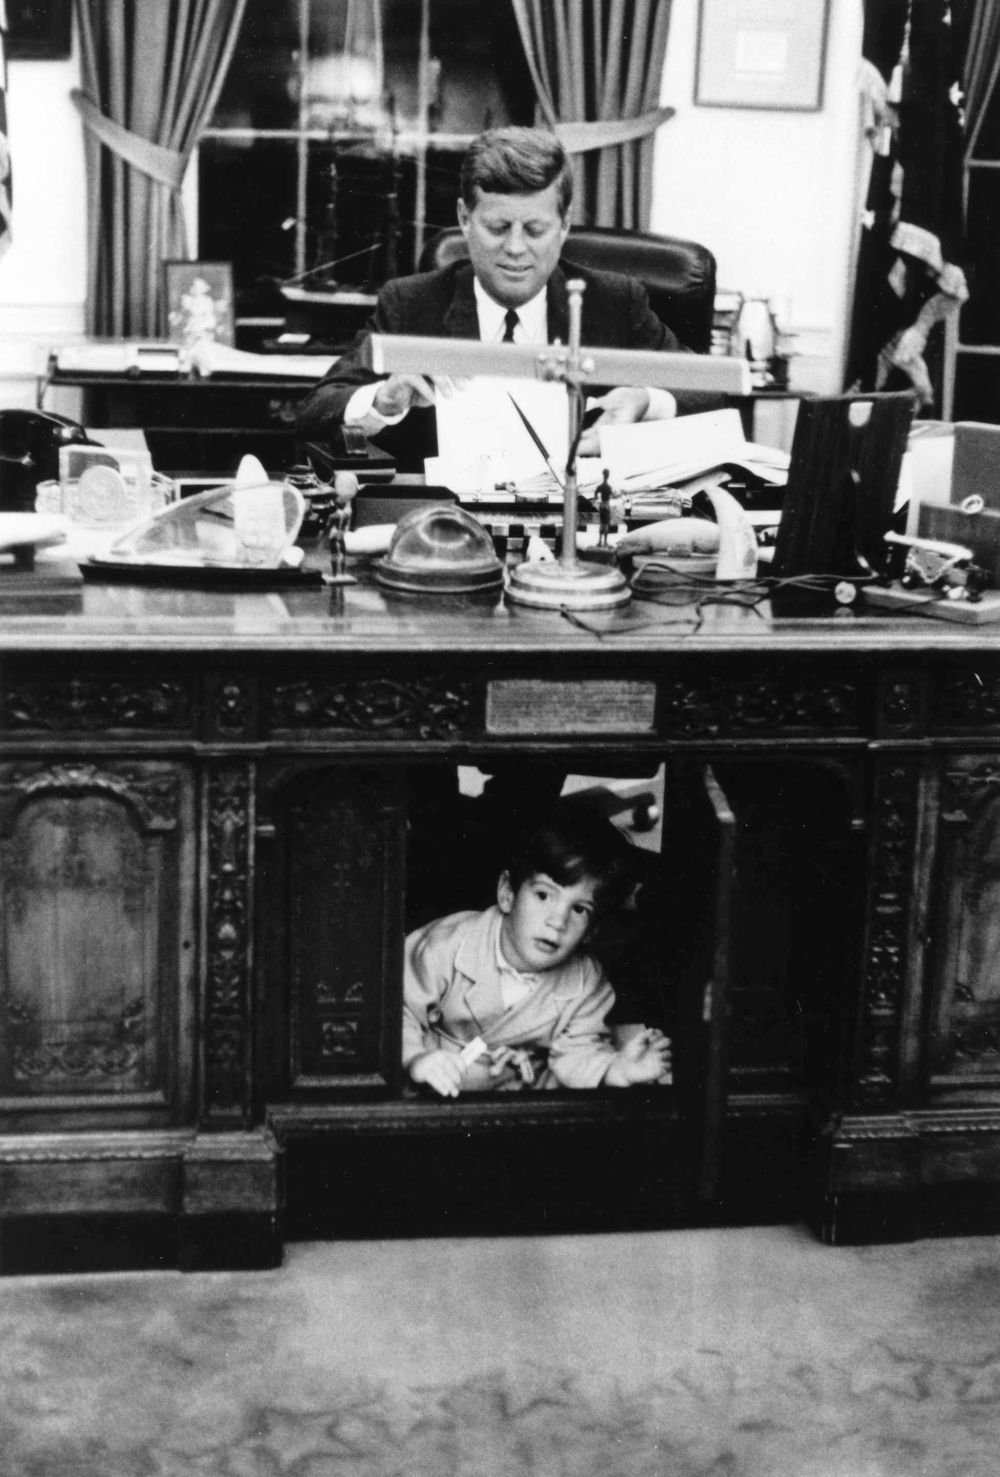 replica jfk white house oval office. john f kennedy and son jr in the oval office at white house most famous pictures of this very historical desk replica jfk a